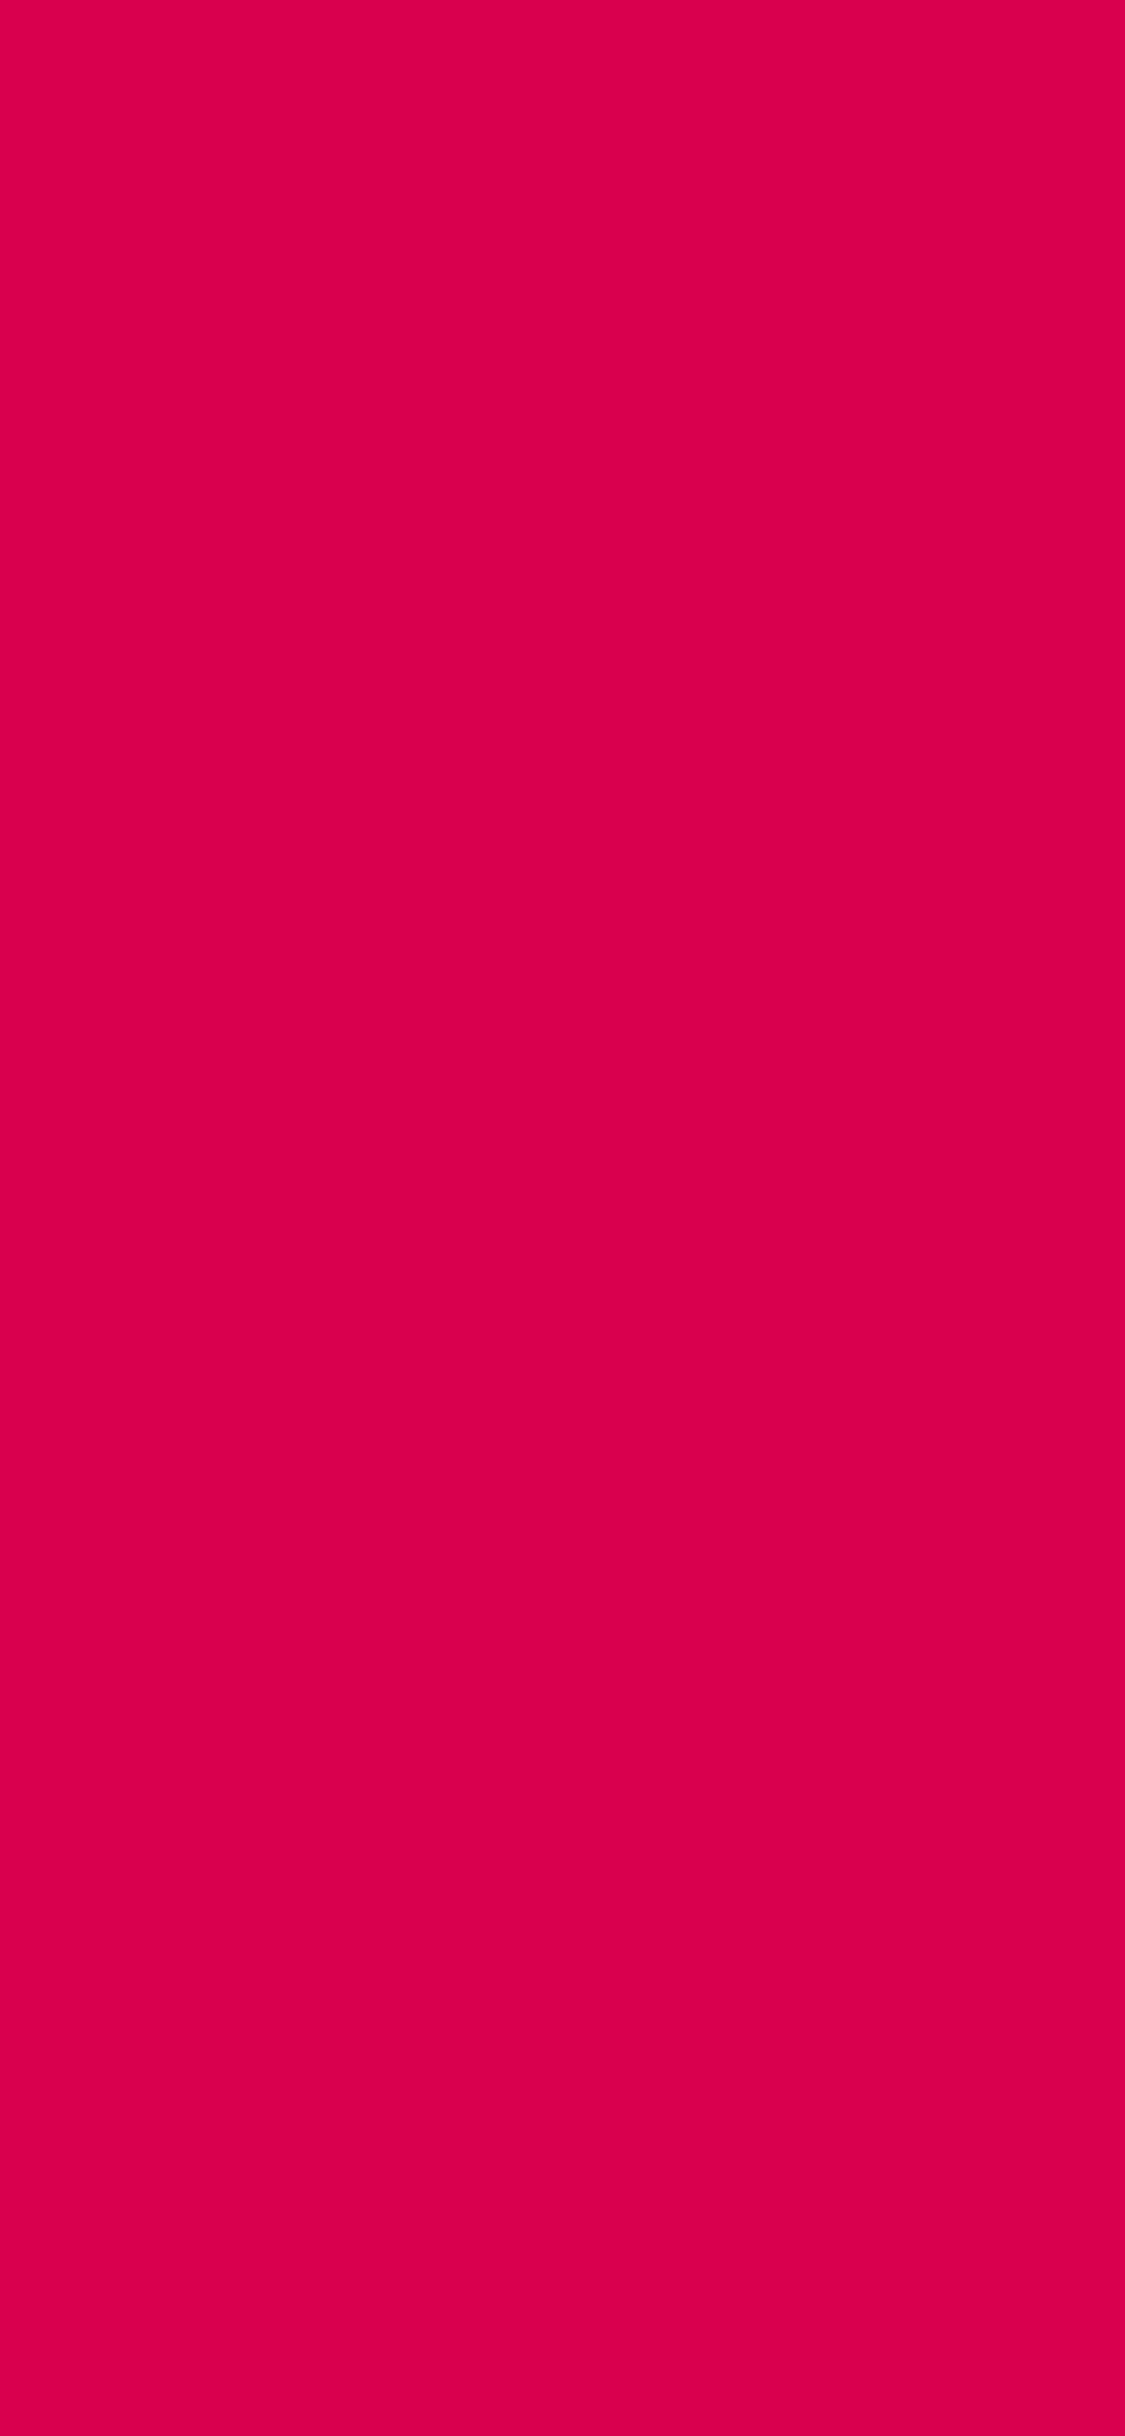 1125x2436 UA Red Solid Color Background